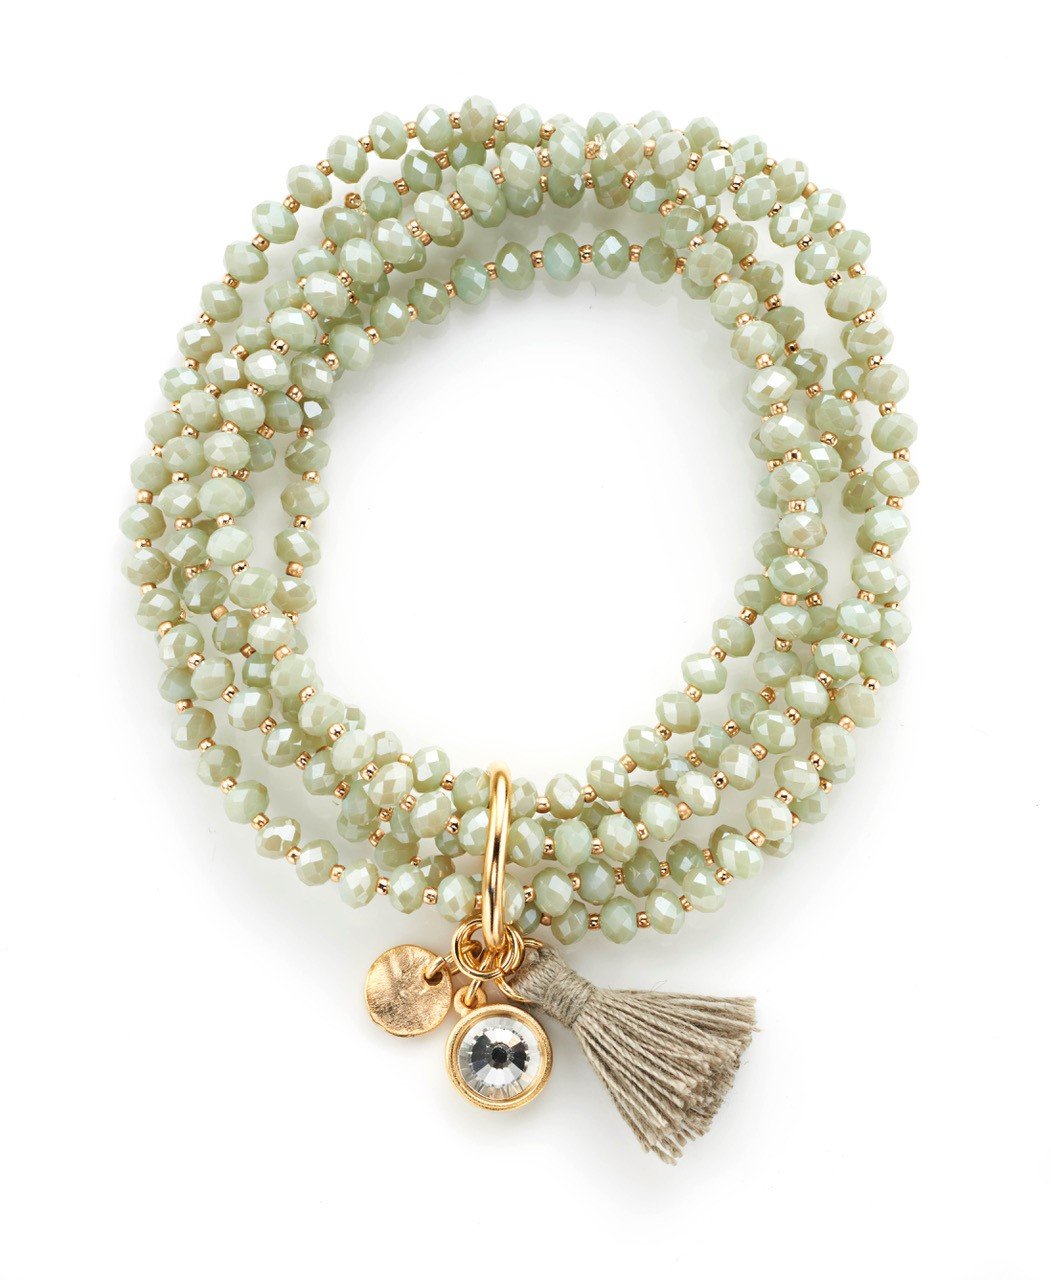 LOFT Tassel Multistrand Stretch Bracelet // Price: $24.50 // Purchase at LOFT stores // (Photo: LOFT)